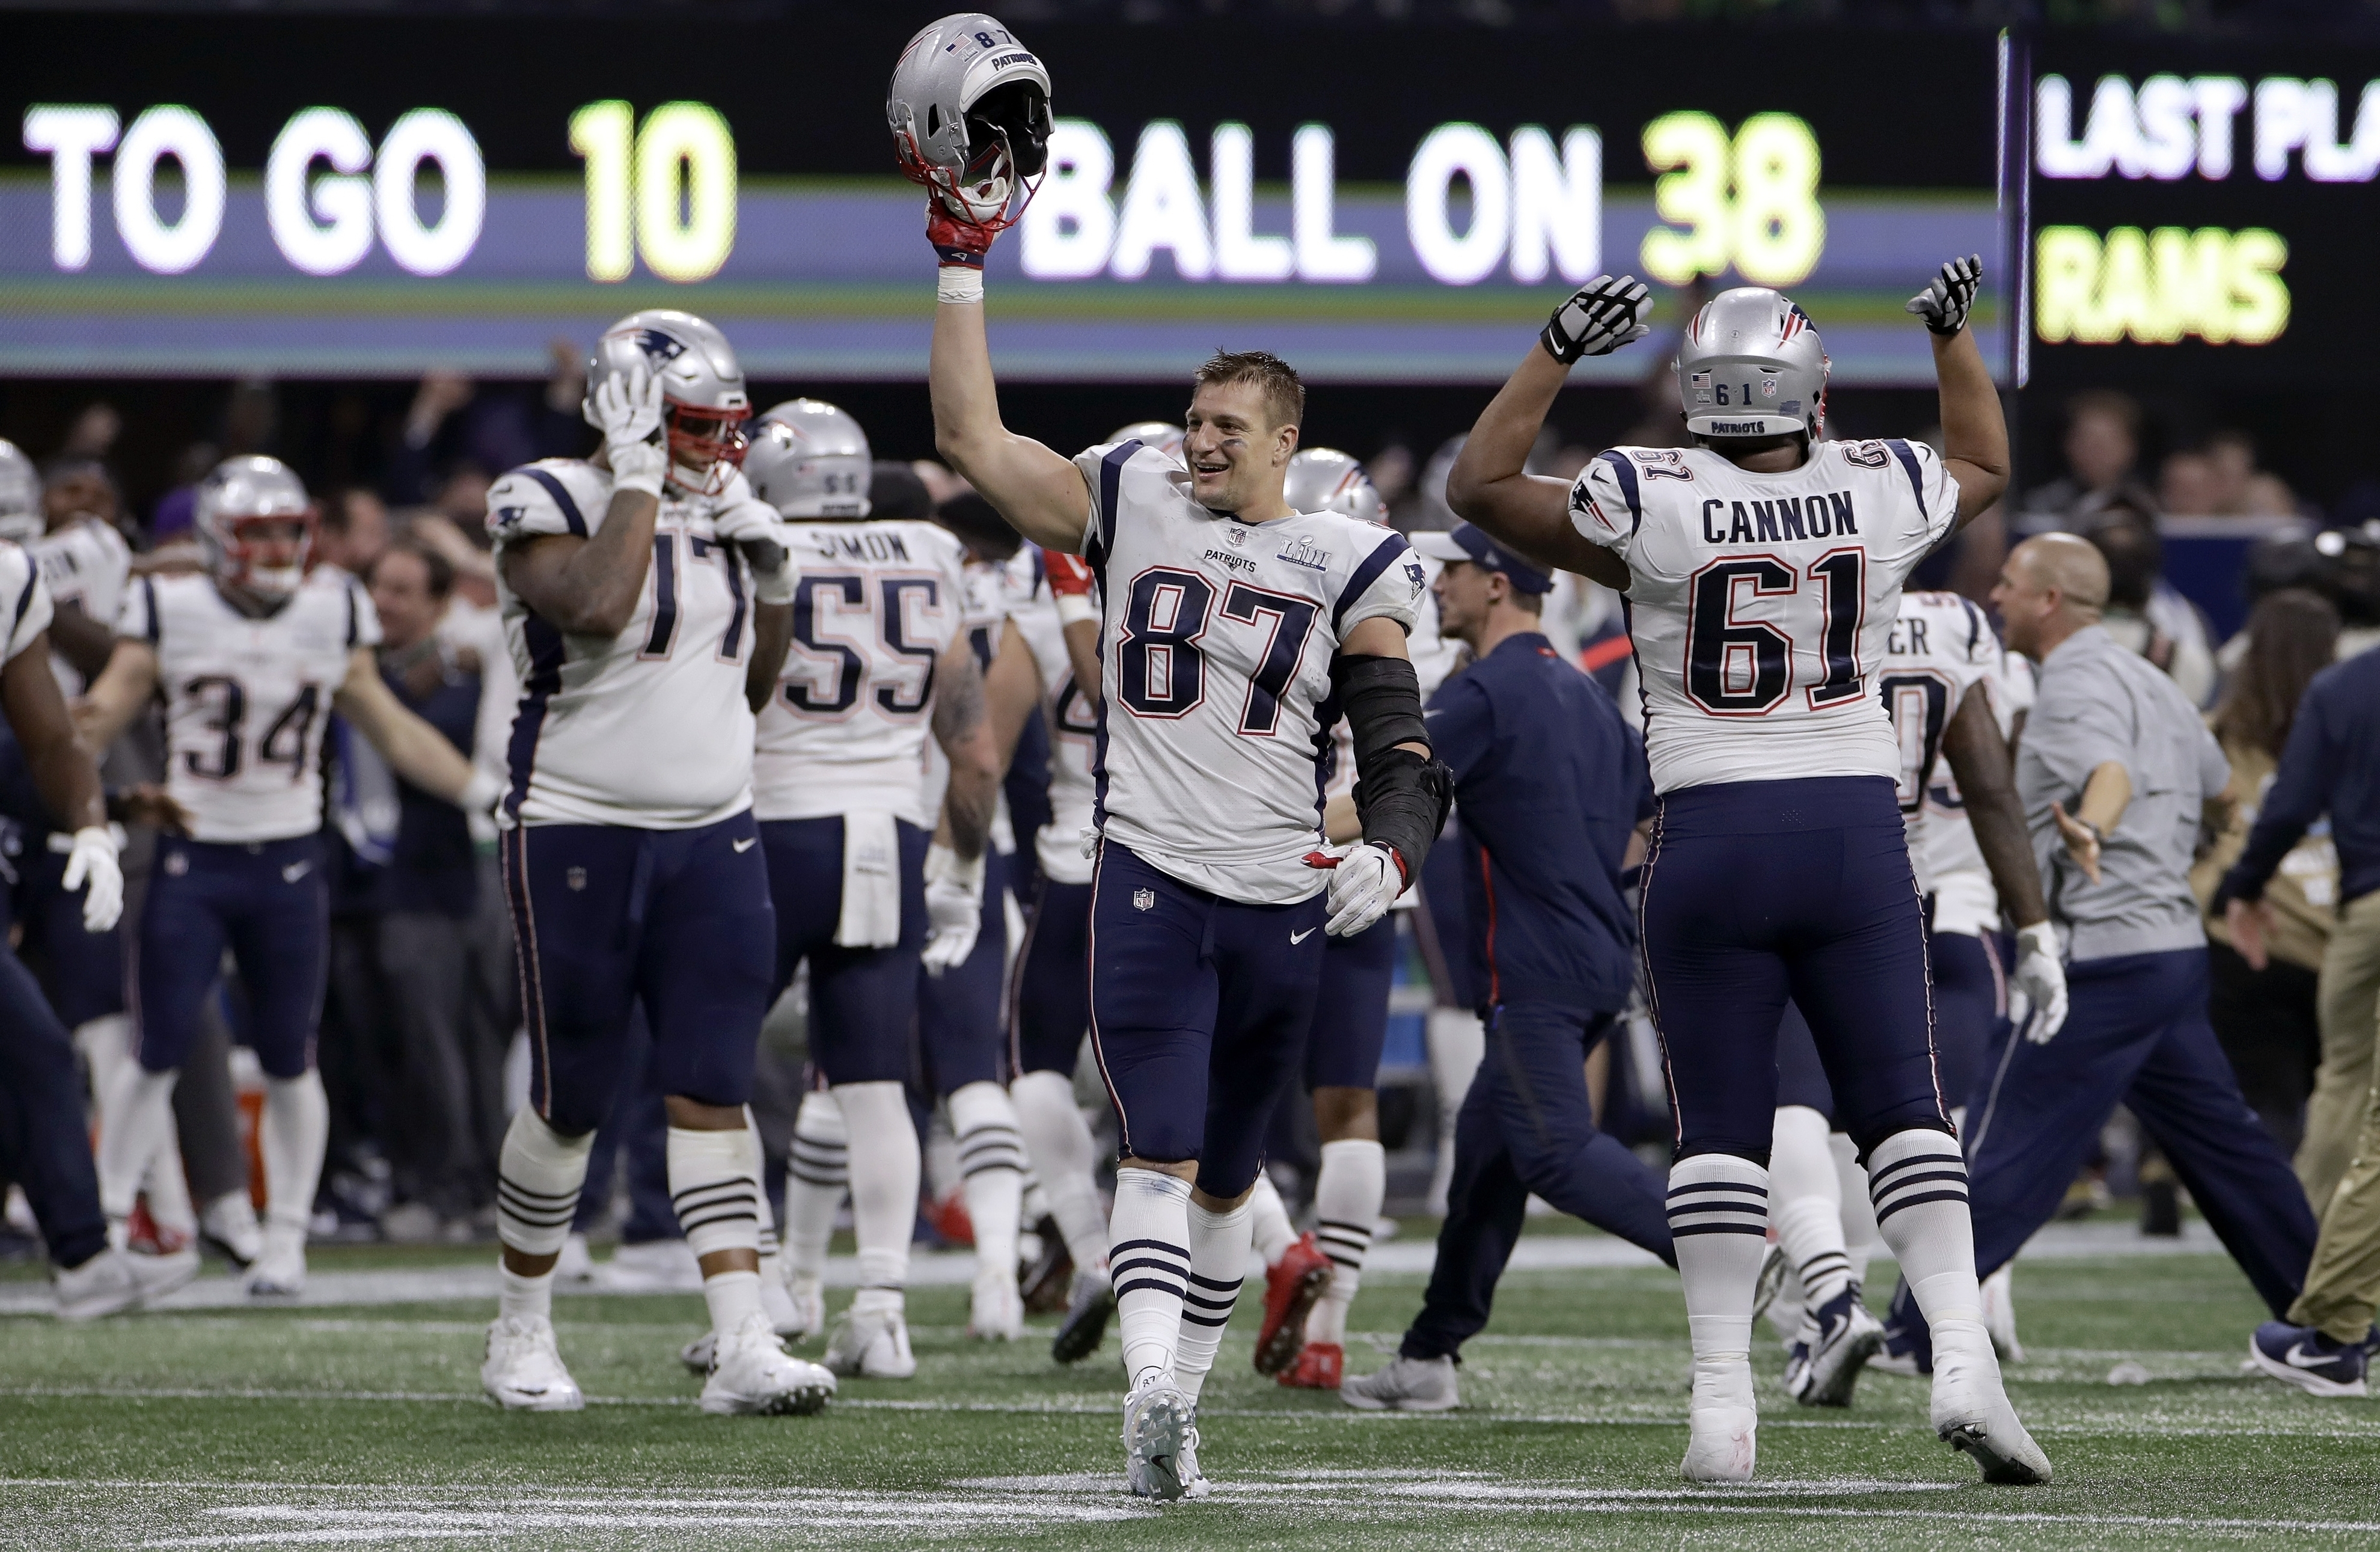 Rob Gronkowski S Exit Could Hasten The End Of The Patriots